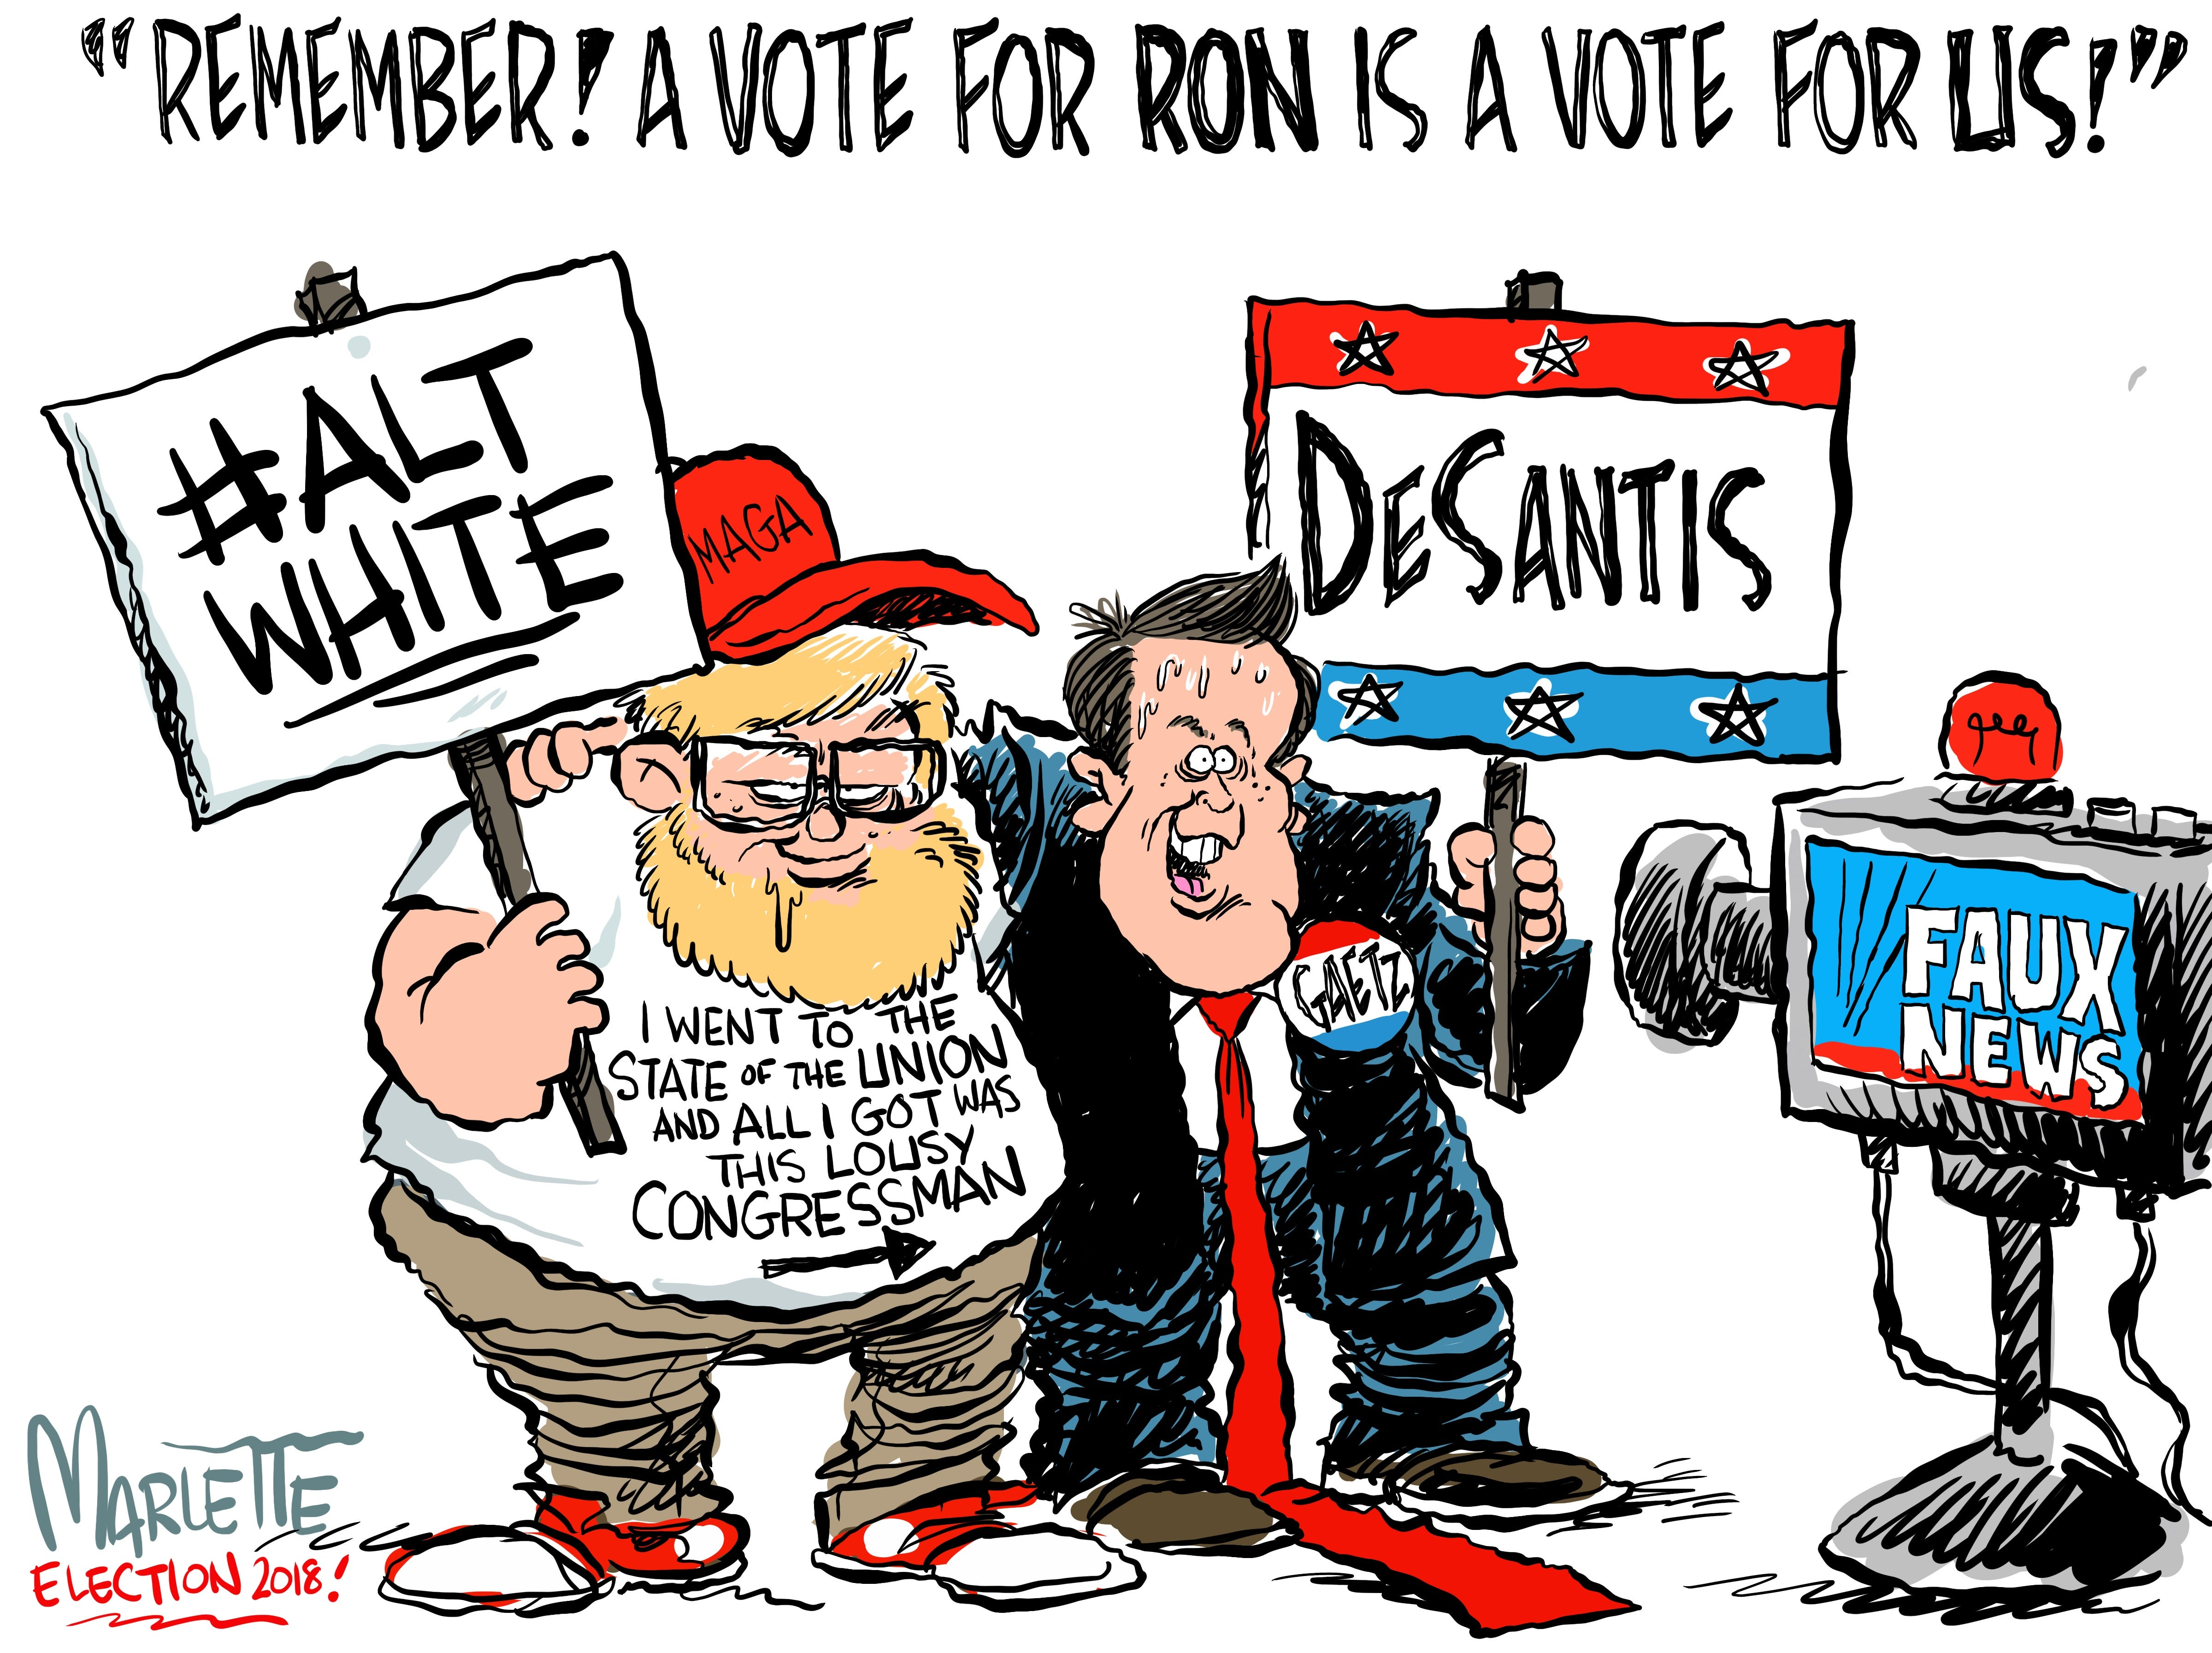 Marlette: Welcome to the People's Republic of Matt Gaetz